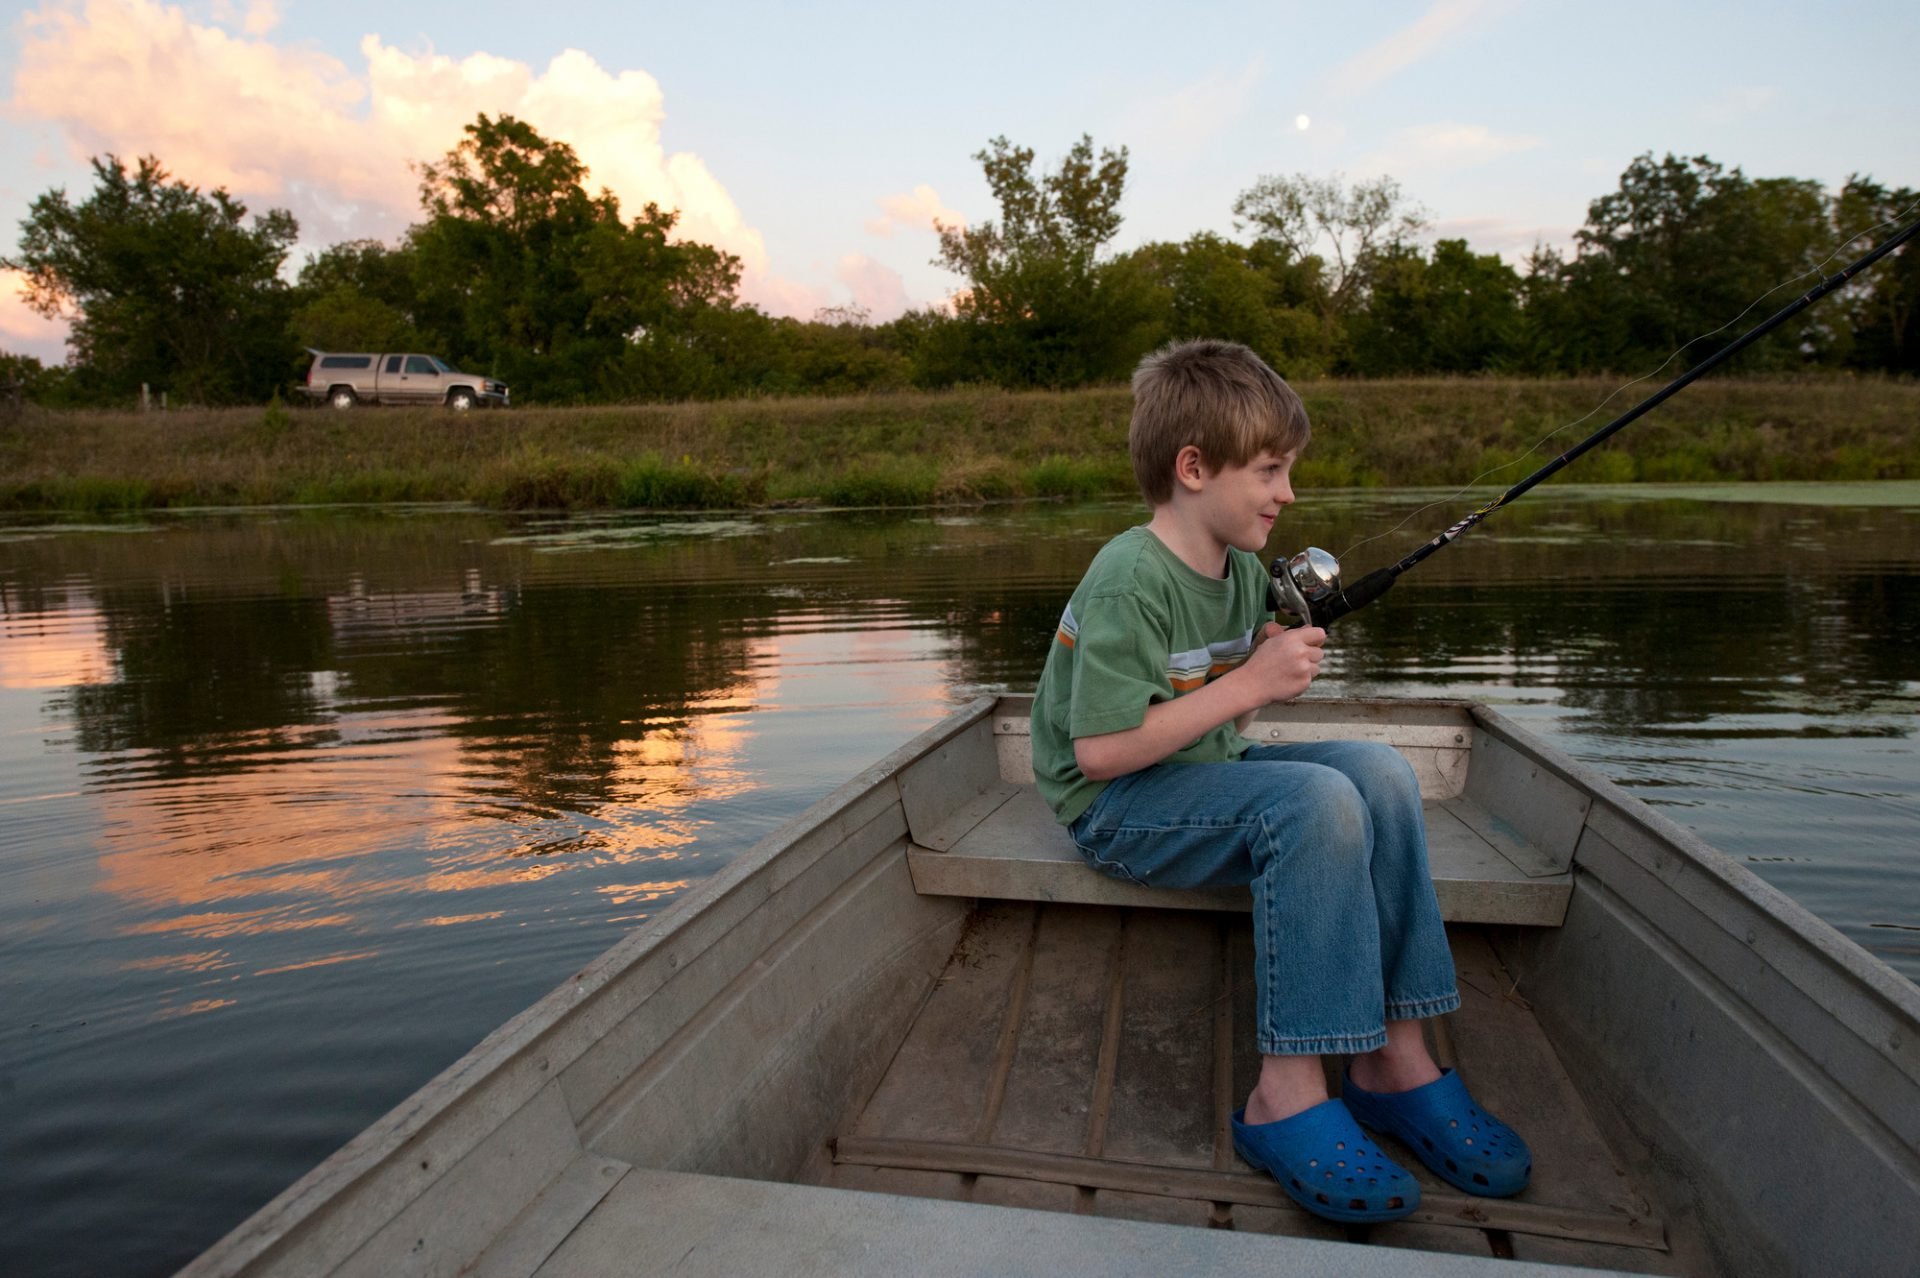 Photo: A young boy anticipates catching a fish near Ceresco, Nebraska.